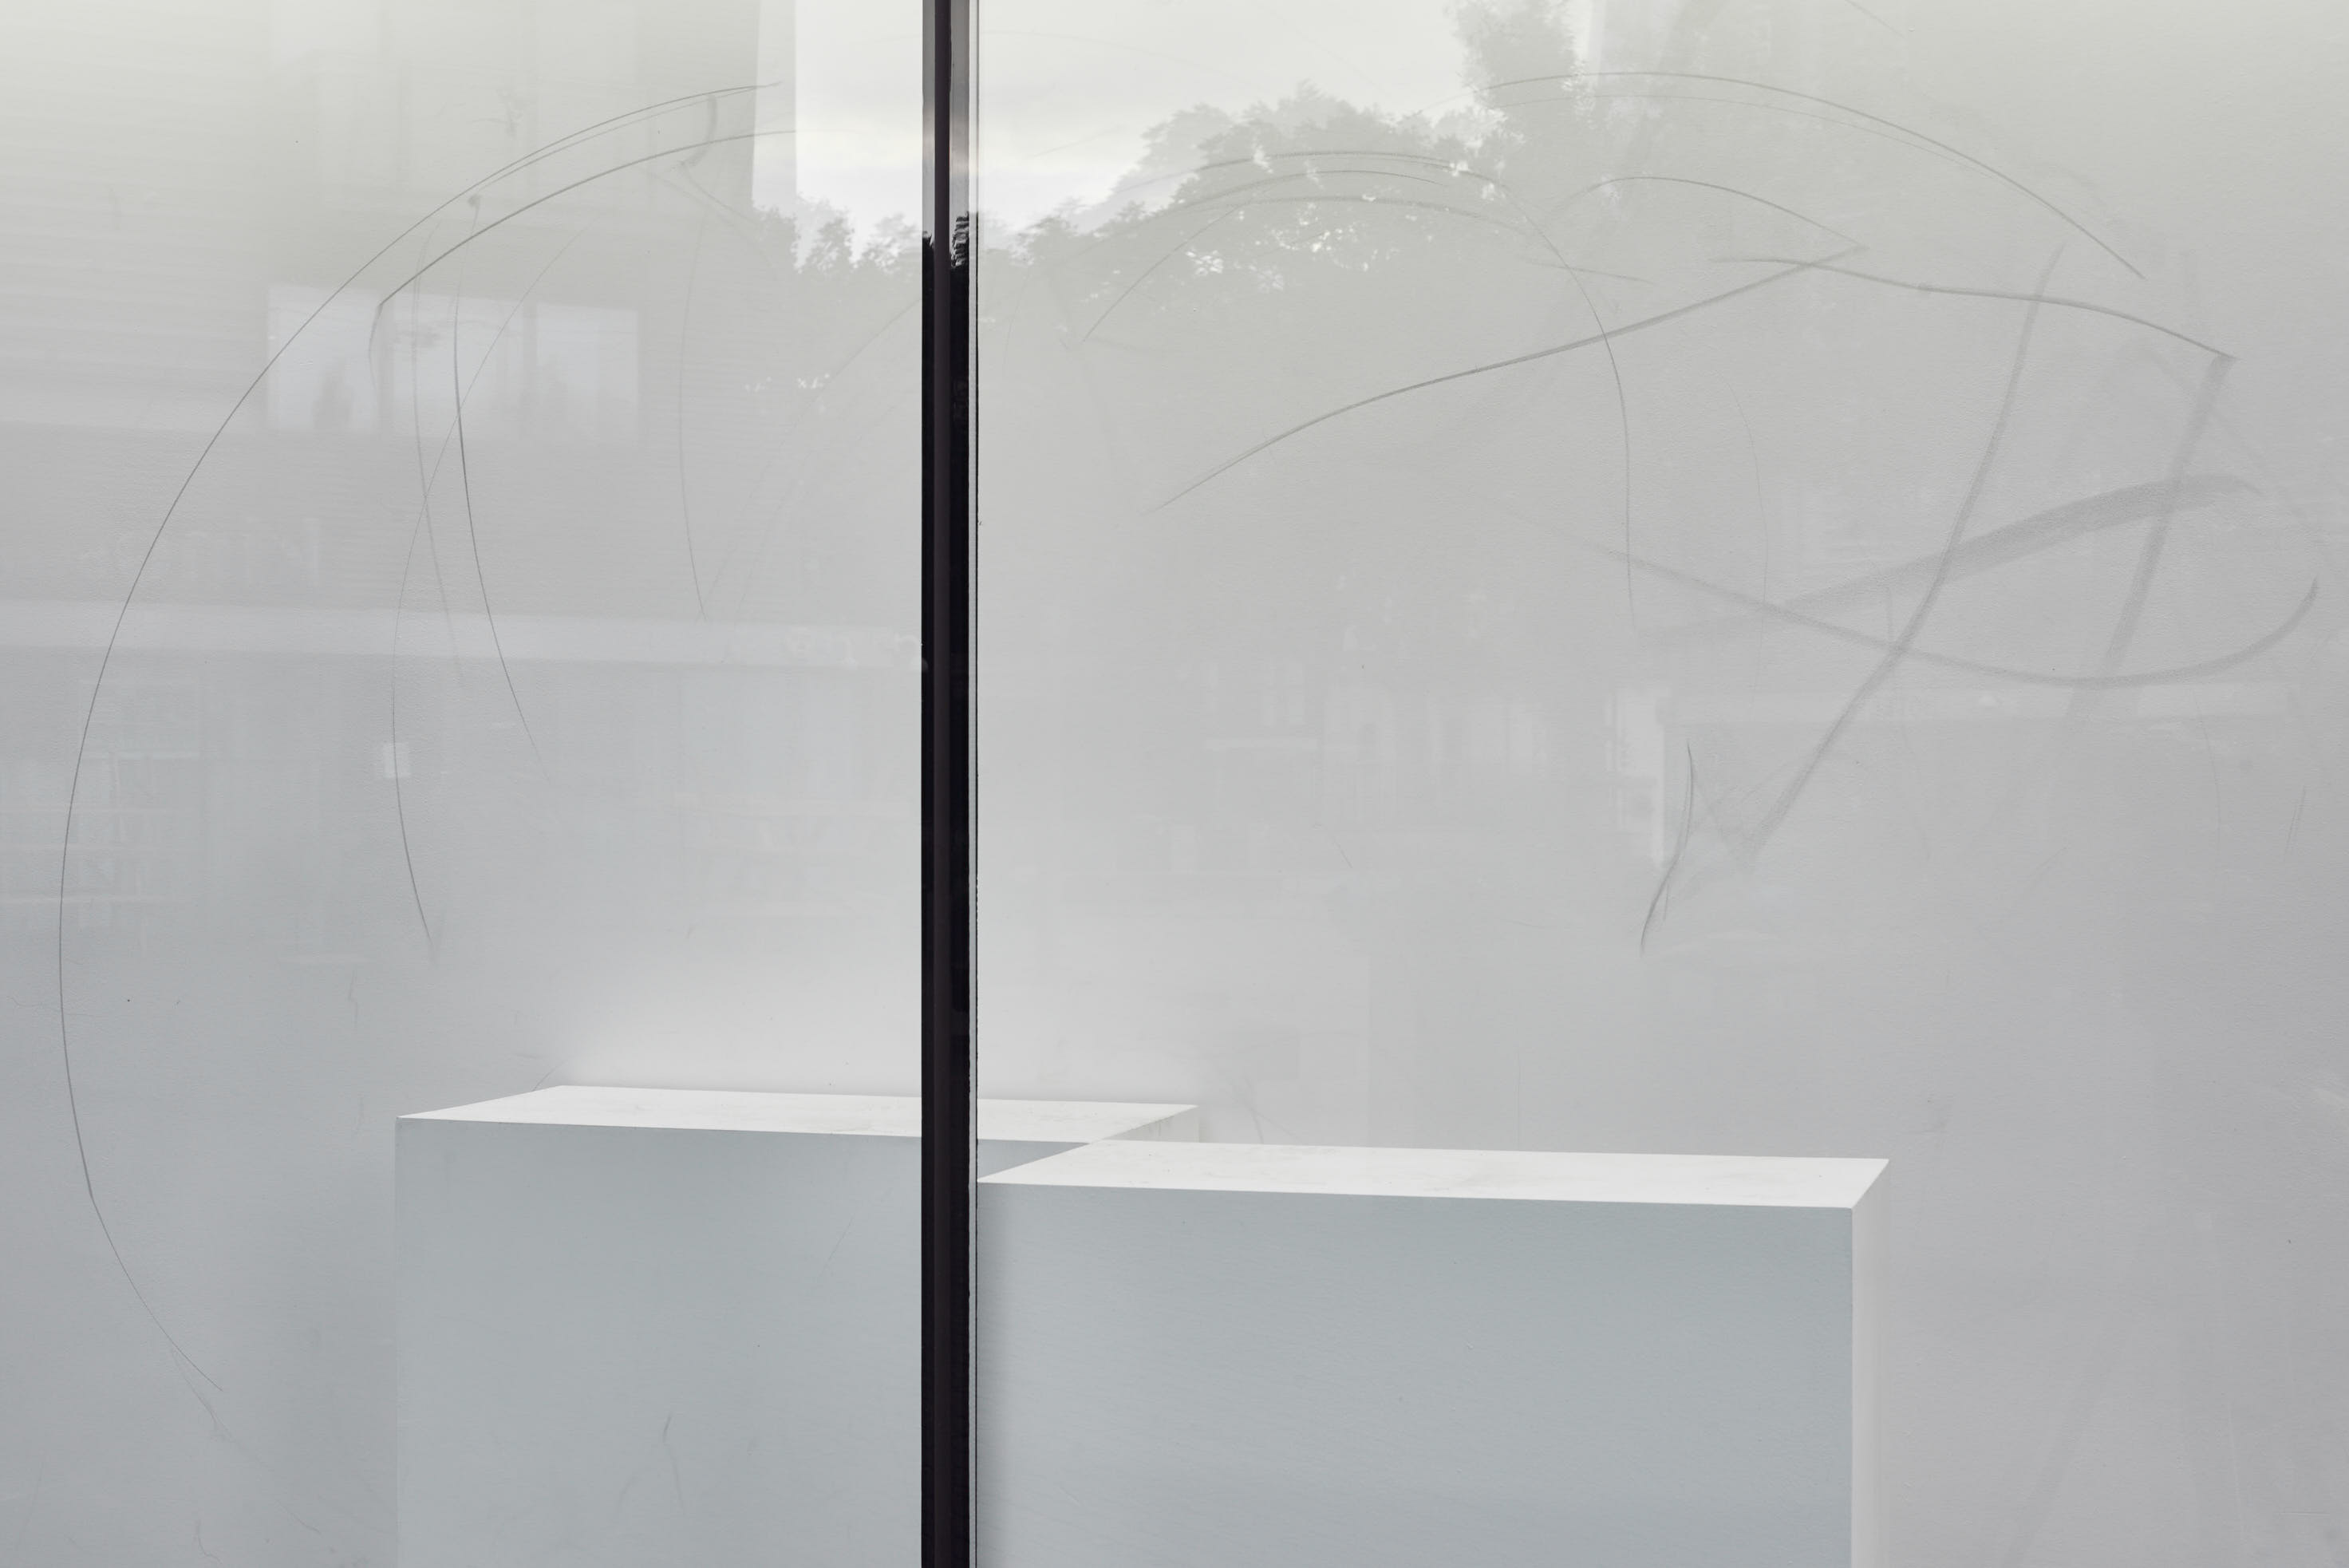 Nicole Bachmann, full stop slightly high, 2020. Installation view. VITRINE, London. Photography: Jonathon Bassett.